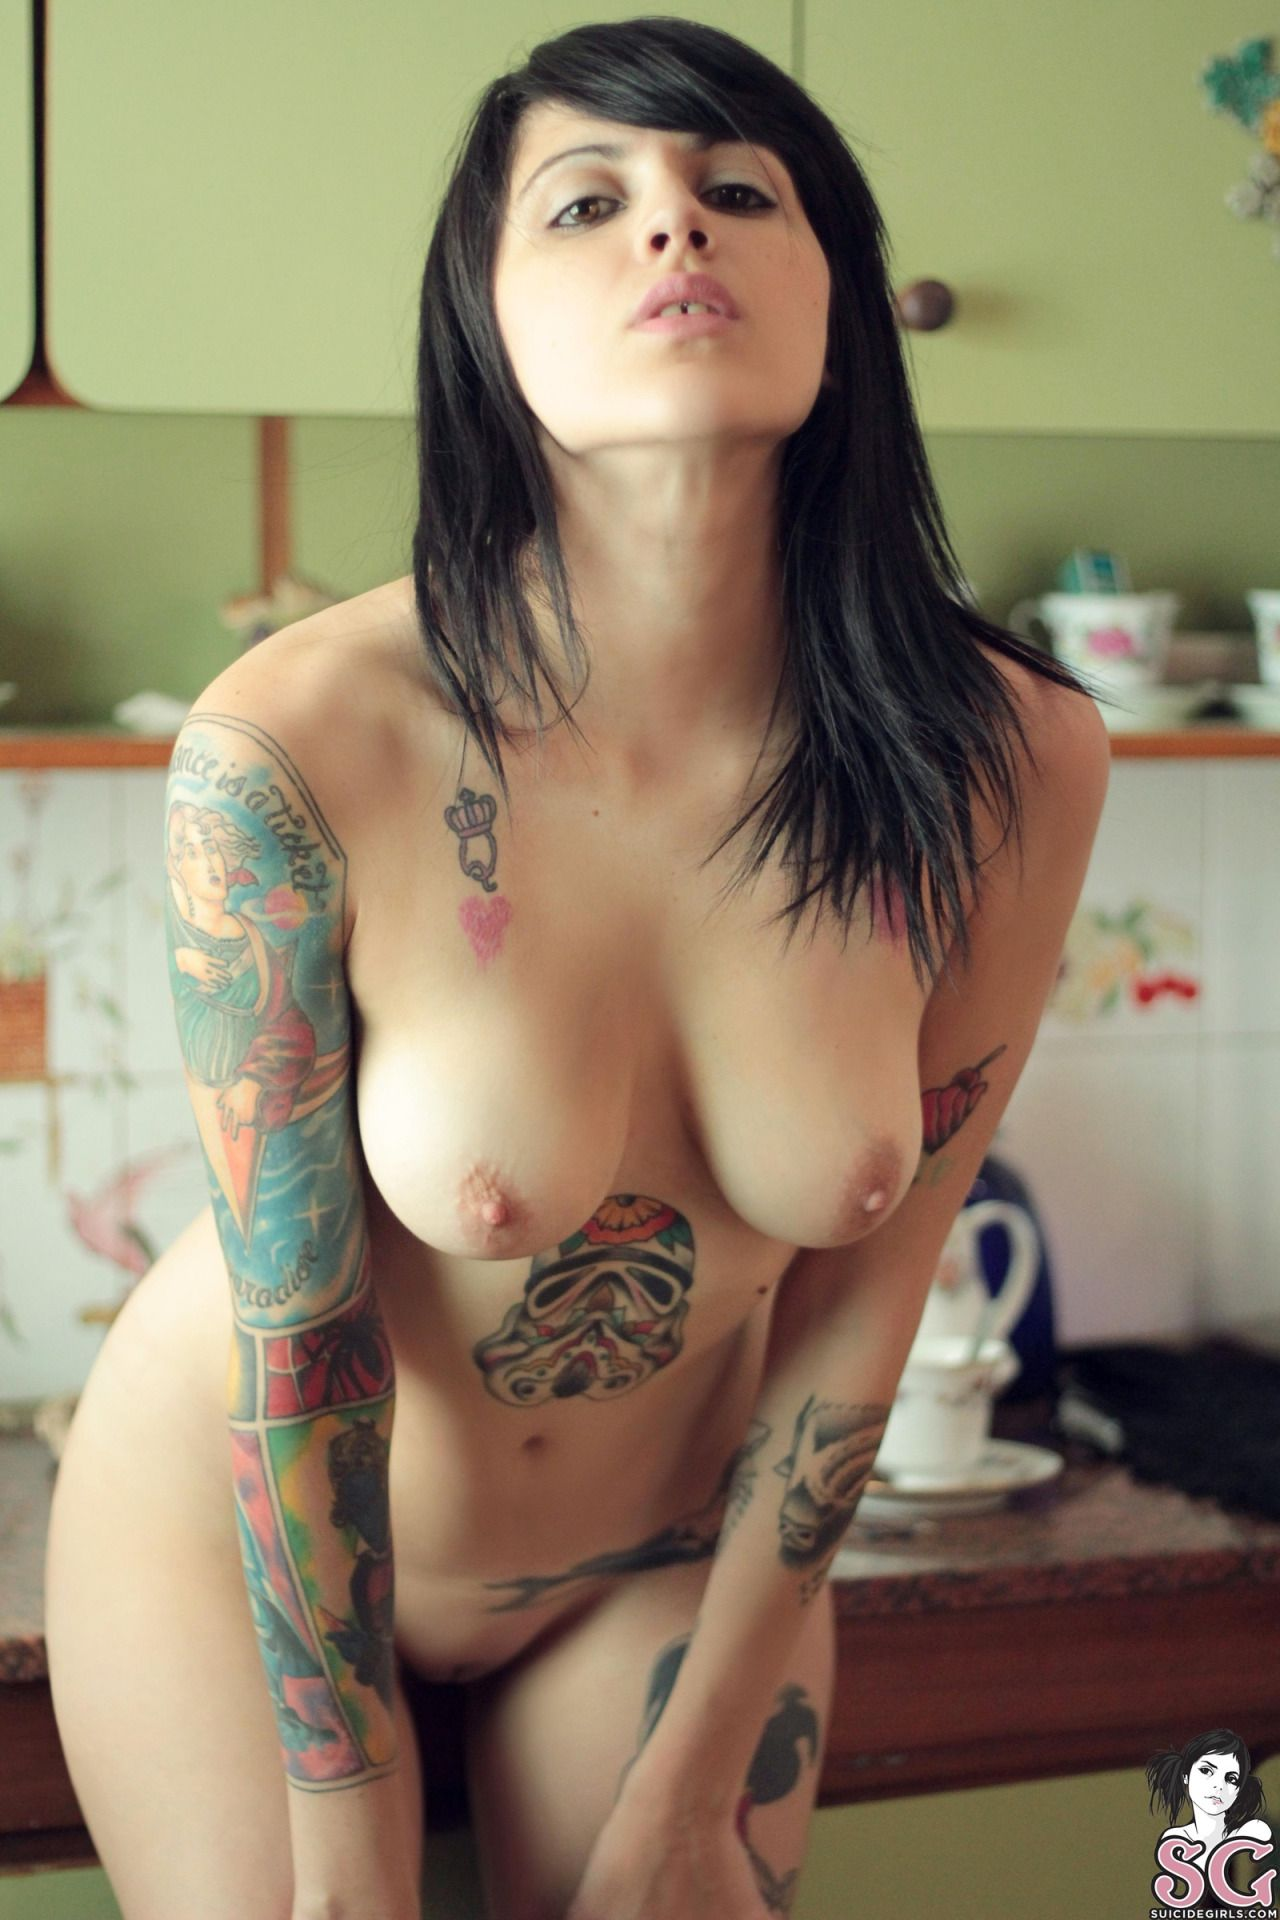 Suicide Girls Beautiful Naked Girls With Tattoos  Hot -6676